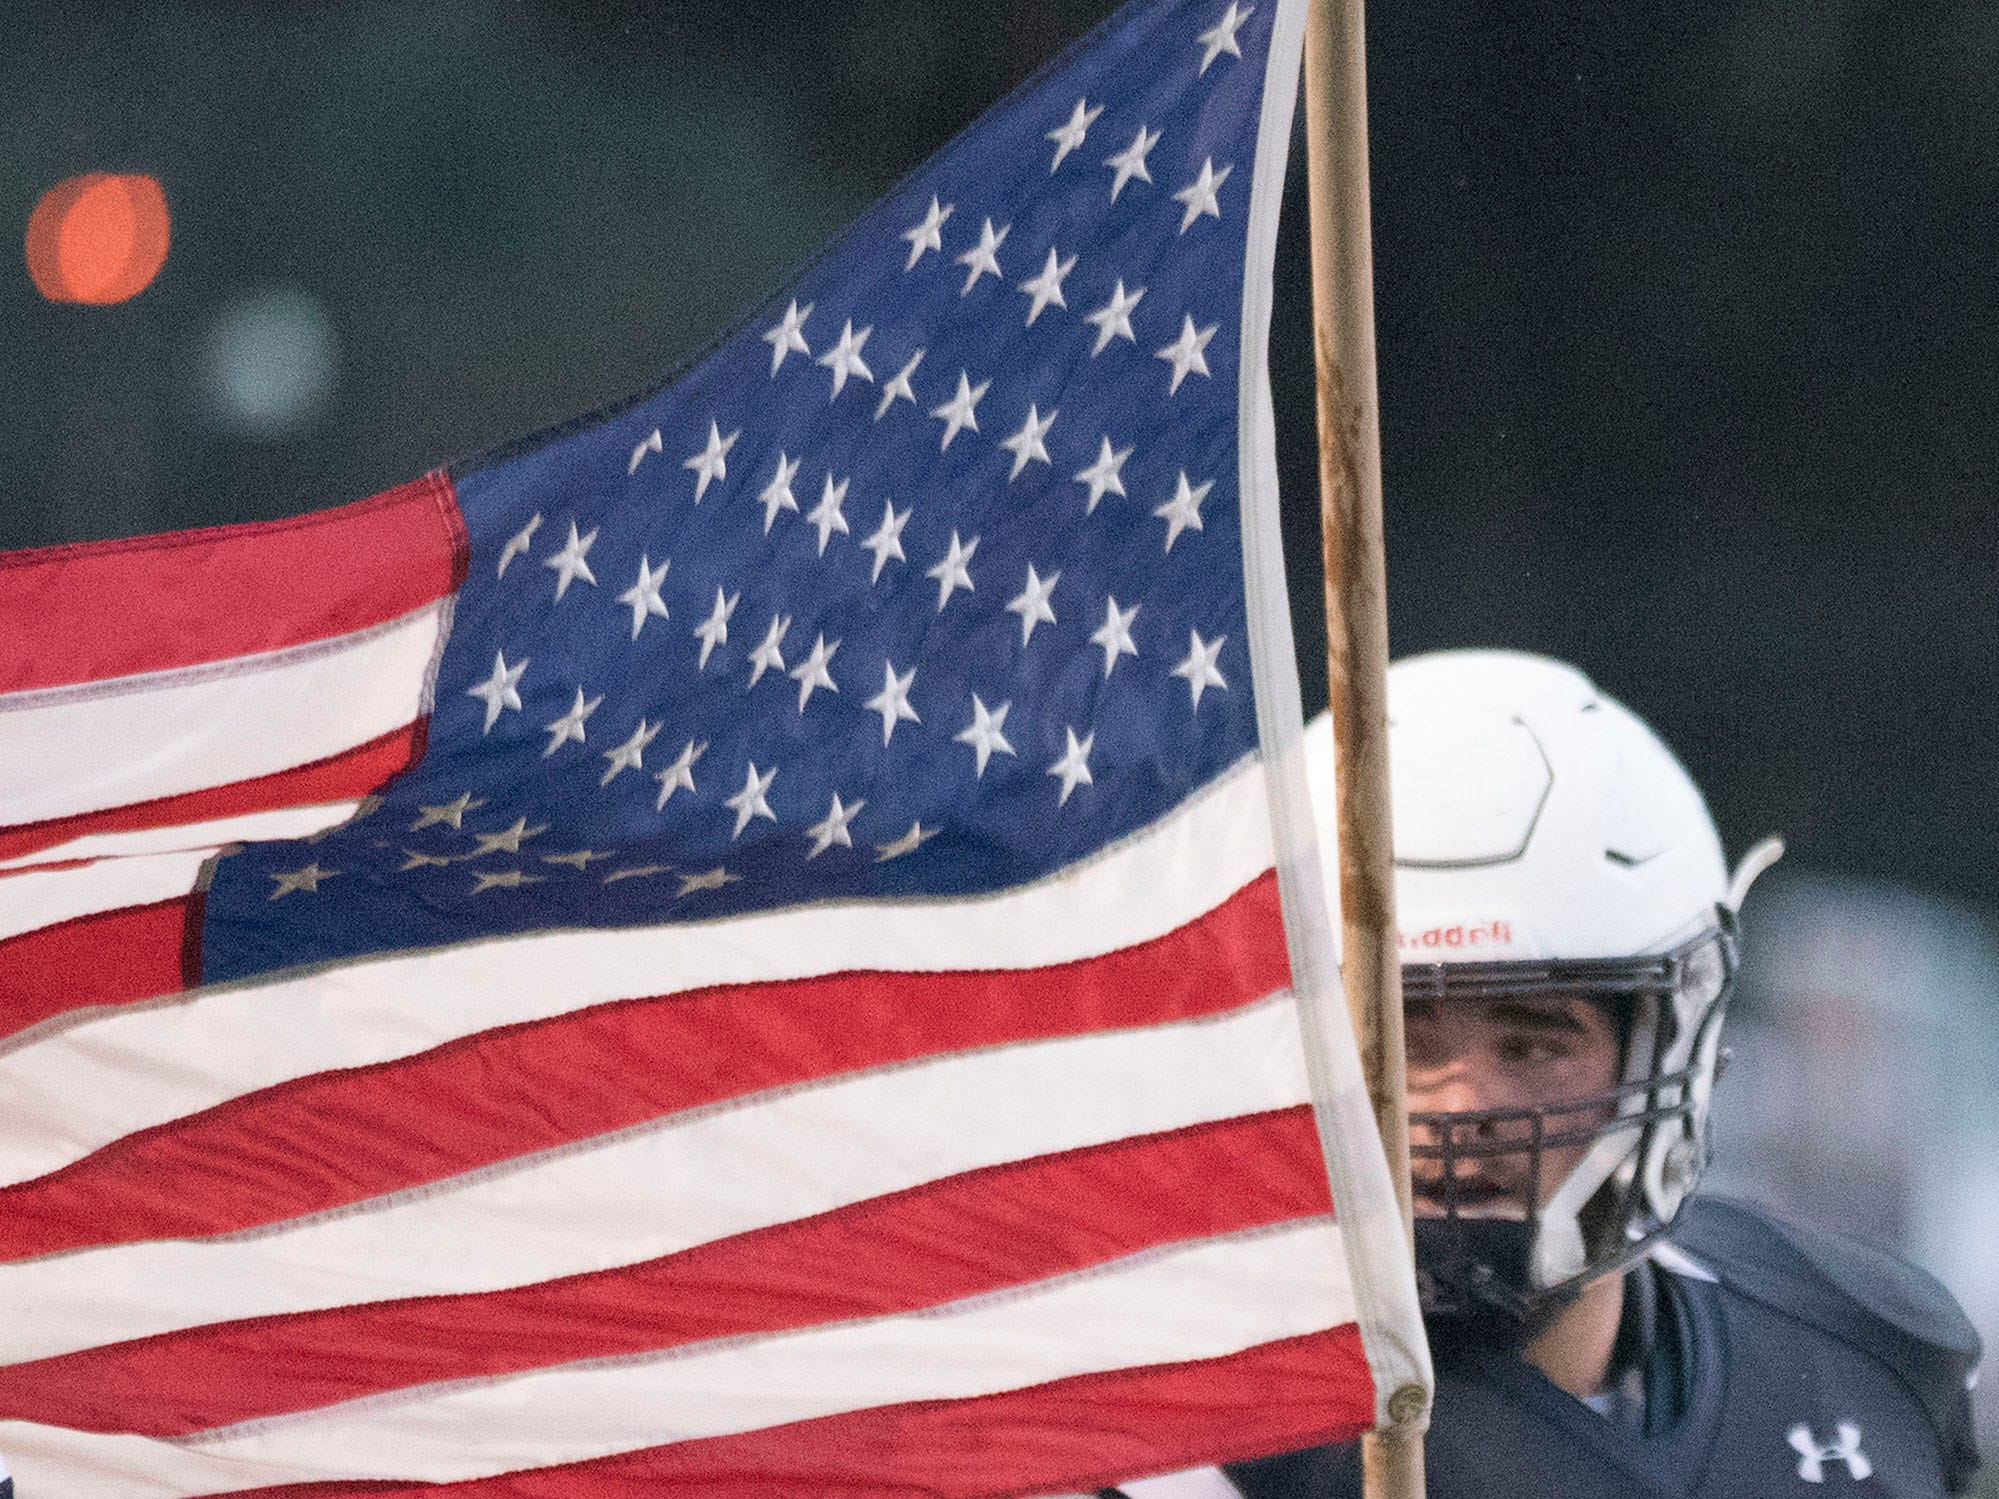 Chambersburg's Brock Harmon carries the American flag before the start of the Red Lion game. Chambersburg defeated Red Lion 28-19 in PIAA football on Friday, Sept. 7, 2018.